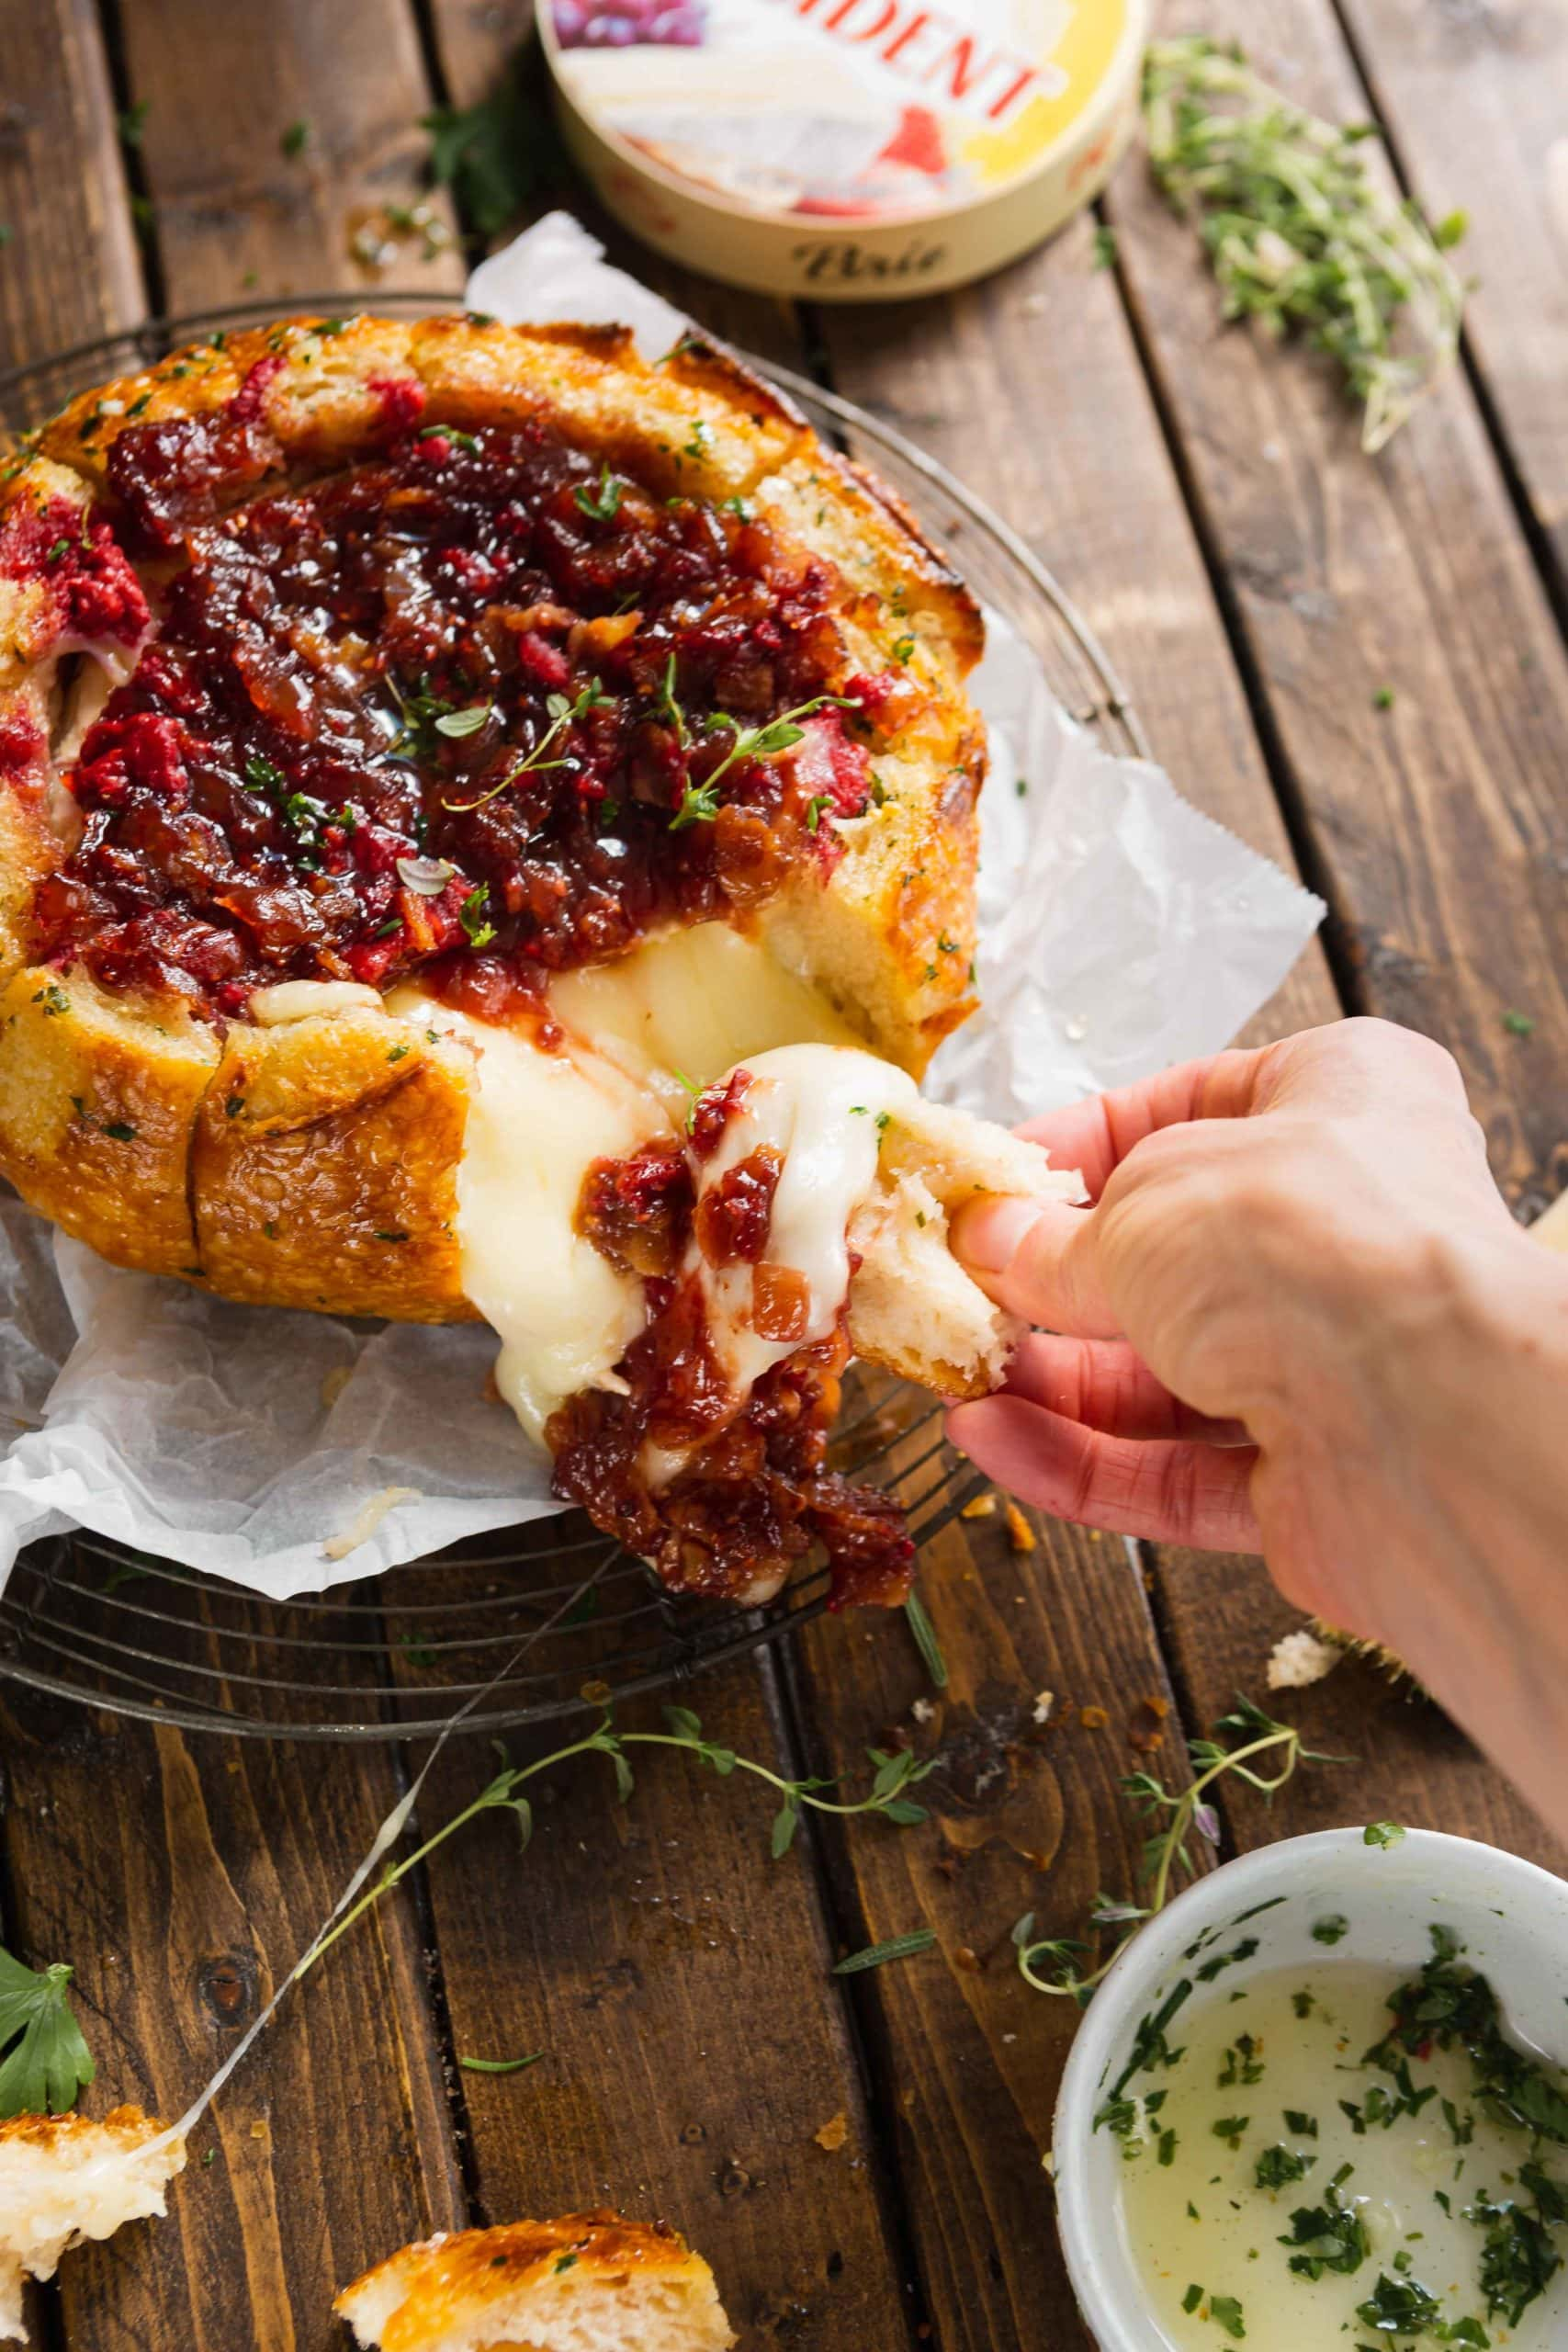 A piece of bread is being pulled apart from a bread bowl filled with baked brie and topped with onion jam and raspberries. The bread bowl is sitting on a piece of parchment paper.